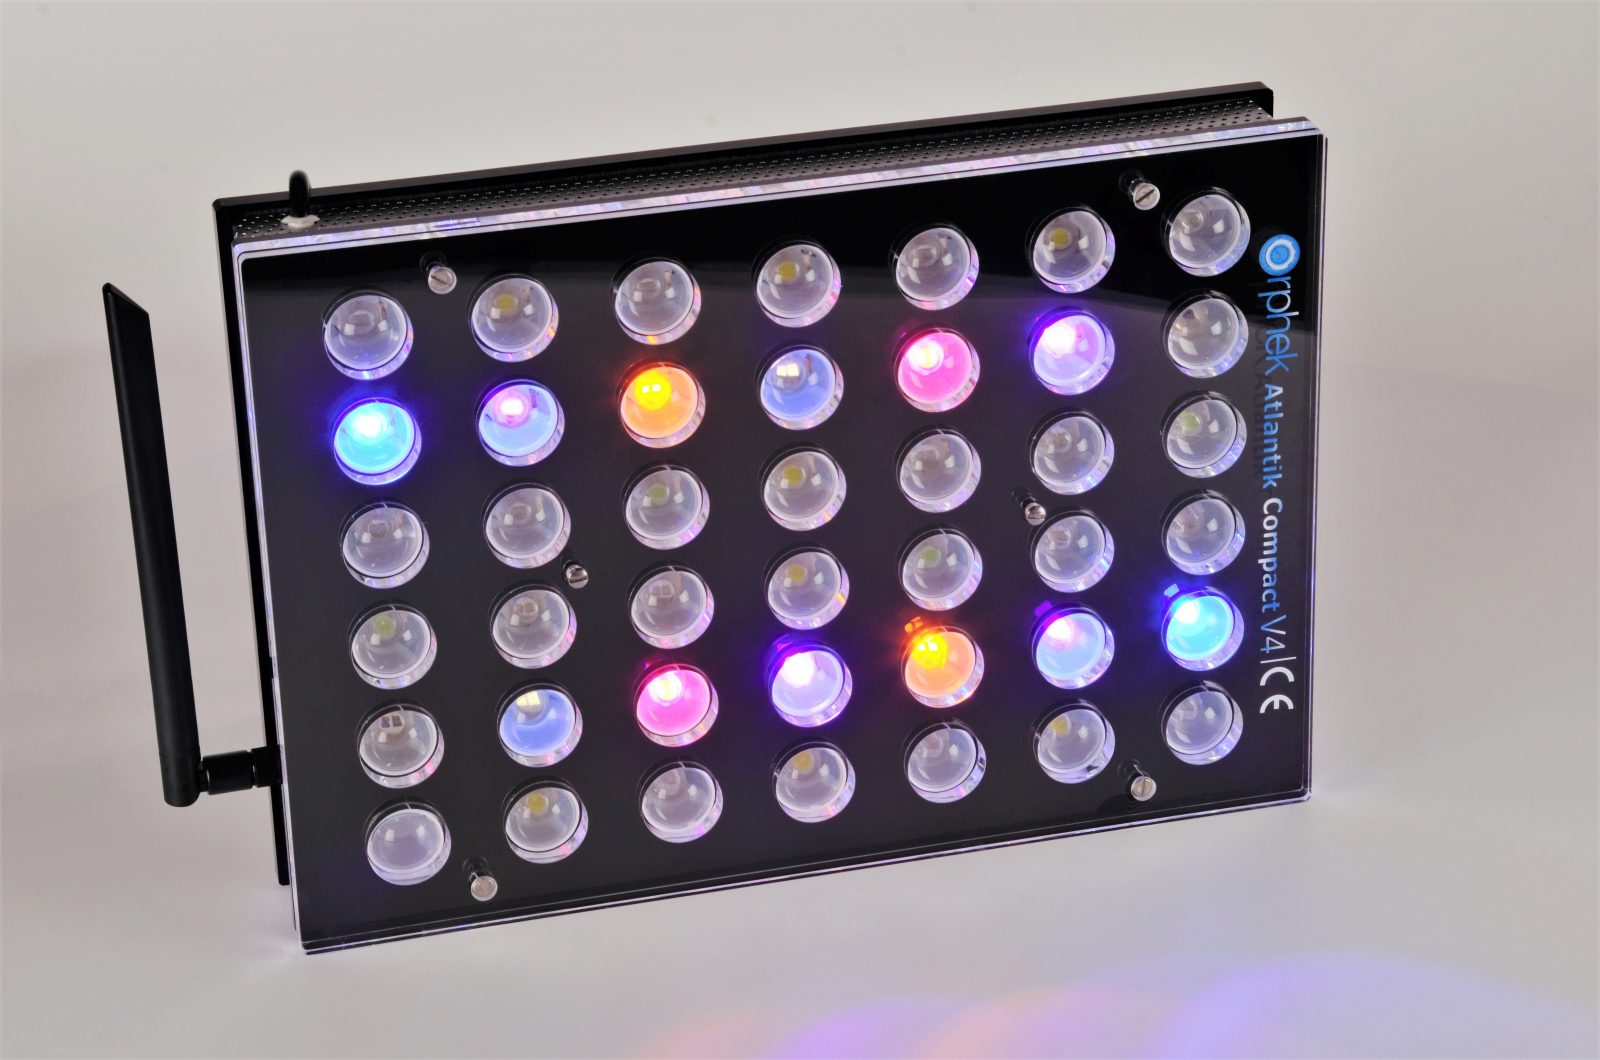 Orphek Aquarium LED Lighting Atlantik Compact V4 cahya ing saluran 3 + 4